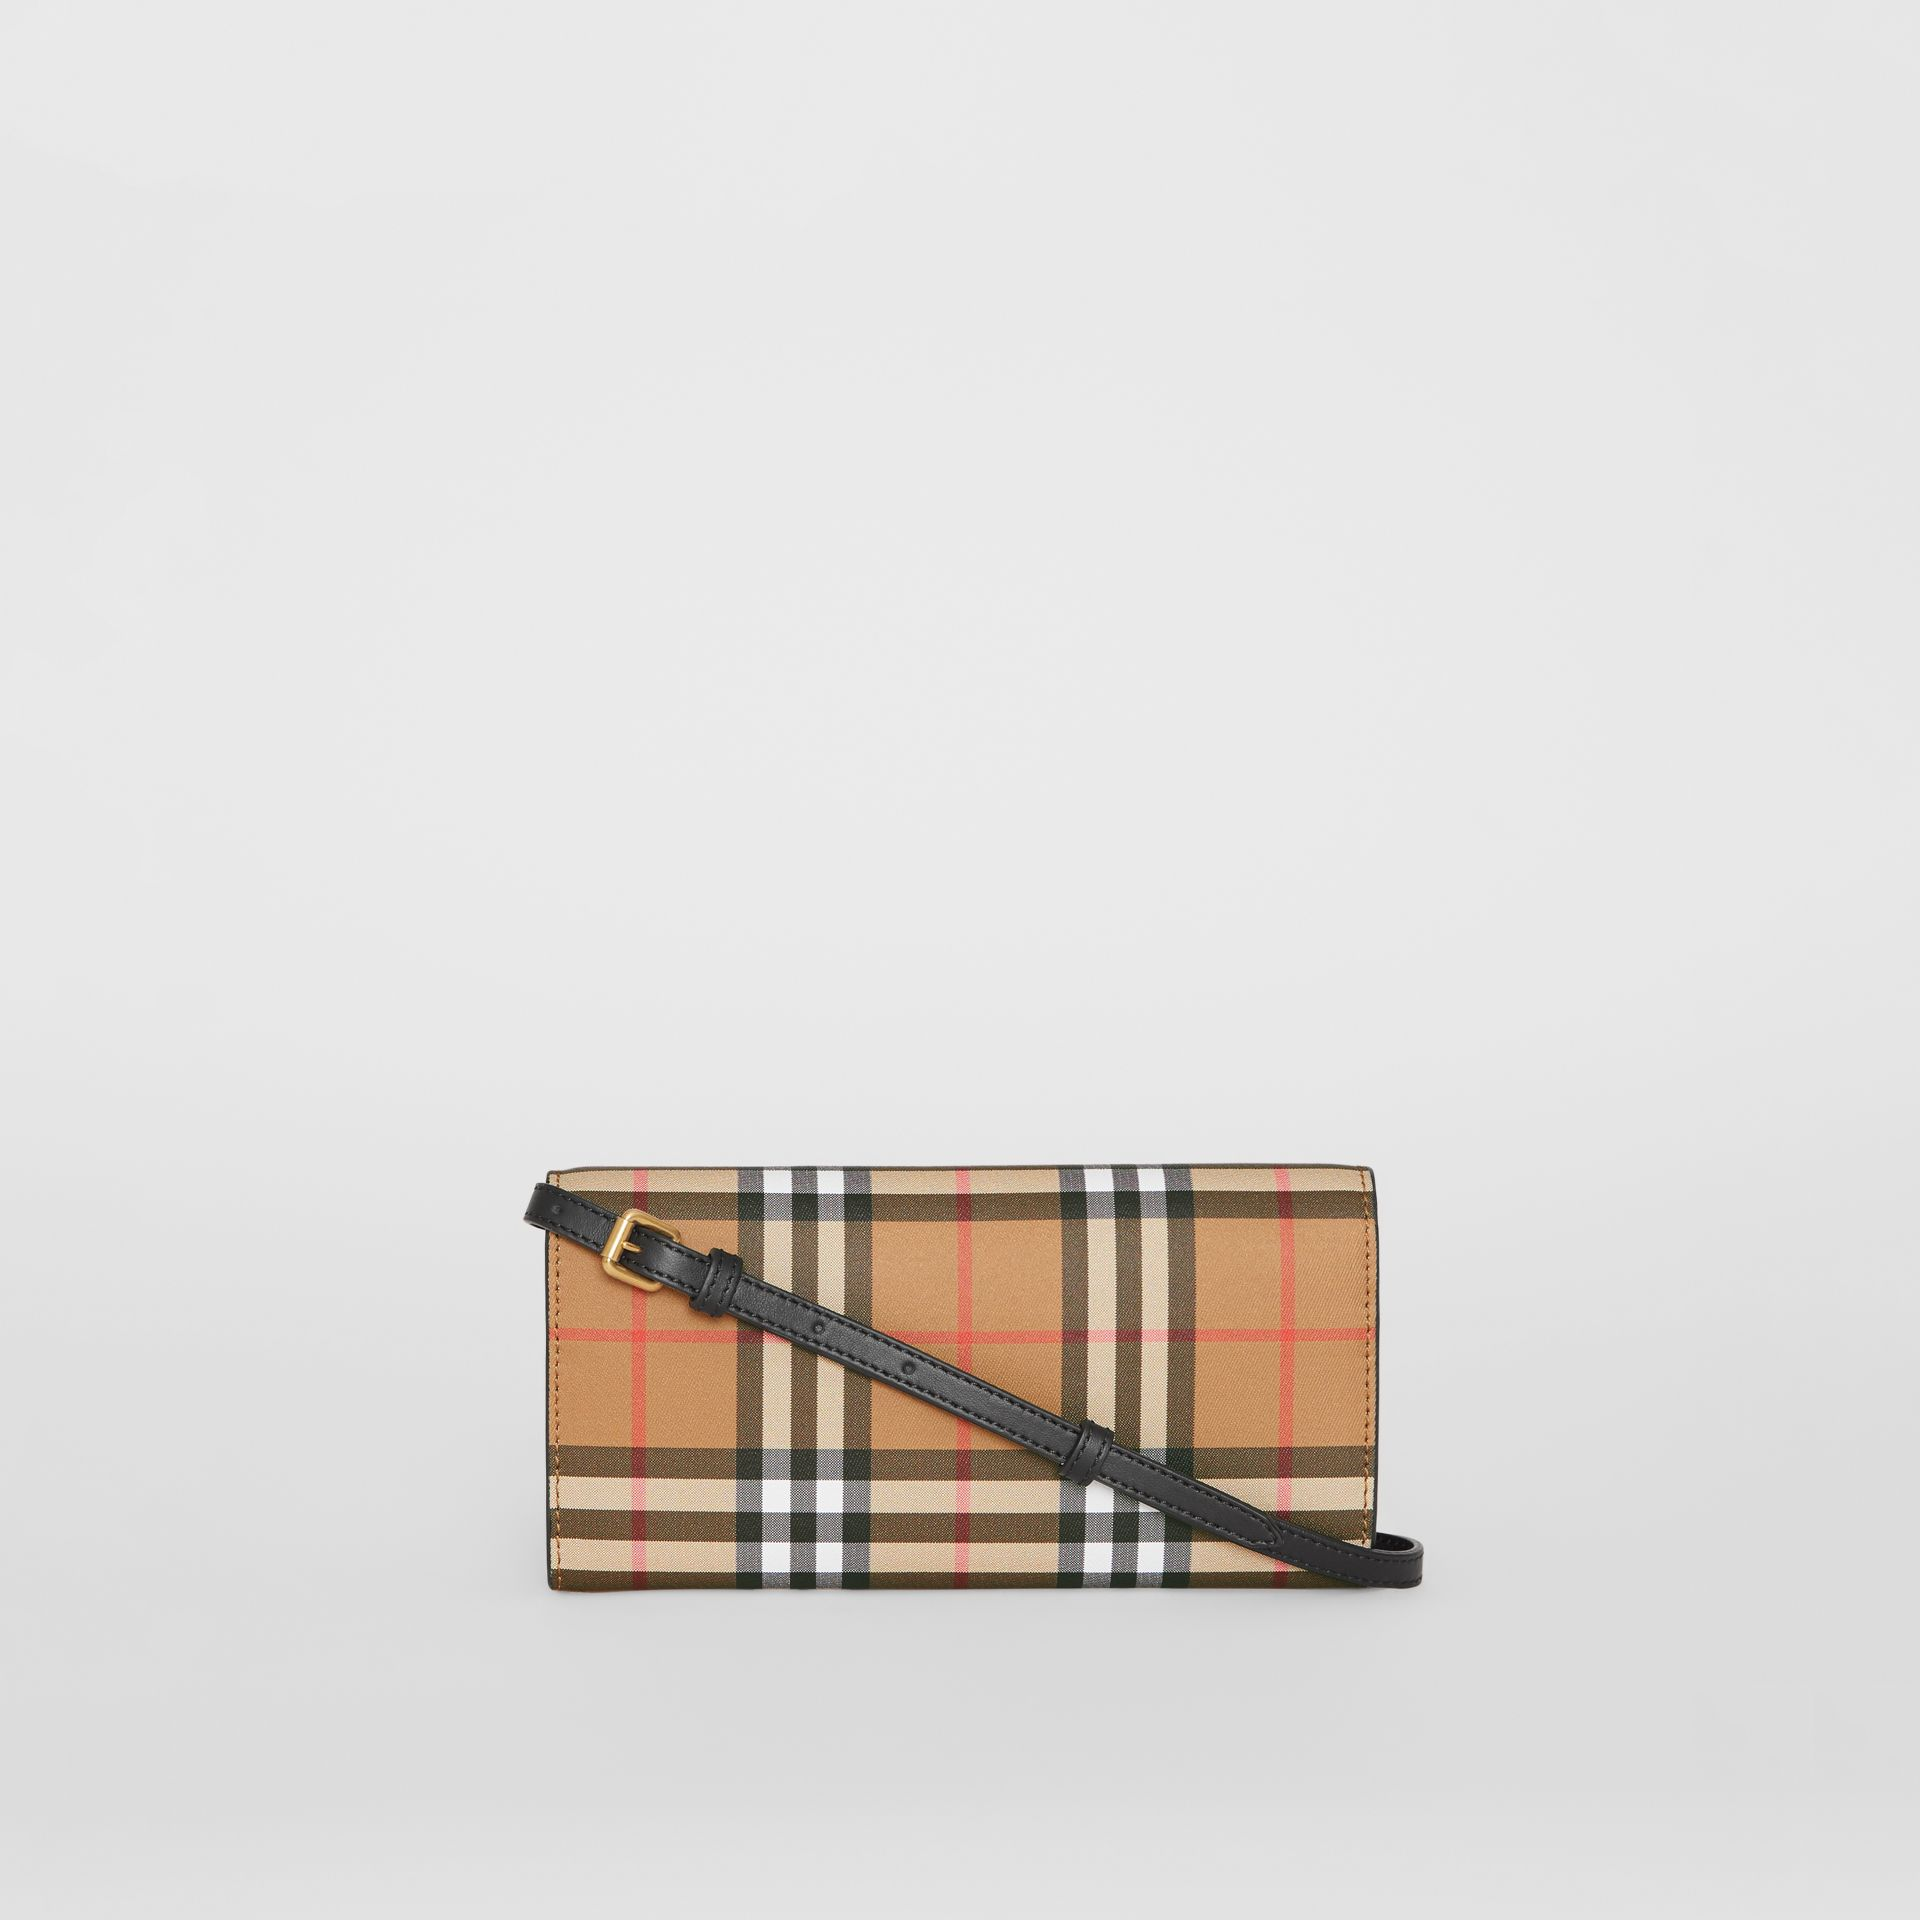 Detachable Strap Vintage Check Leather Wallet in Black - Women | Burberry - gallery image 7